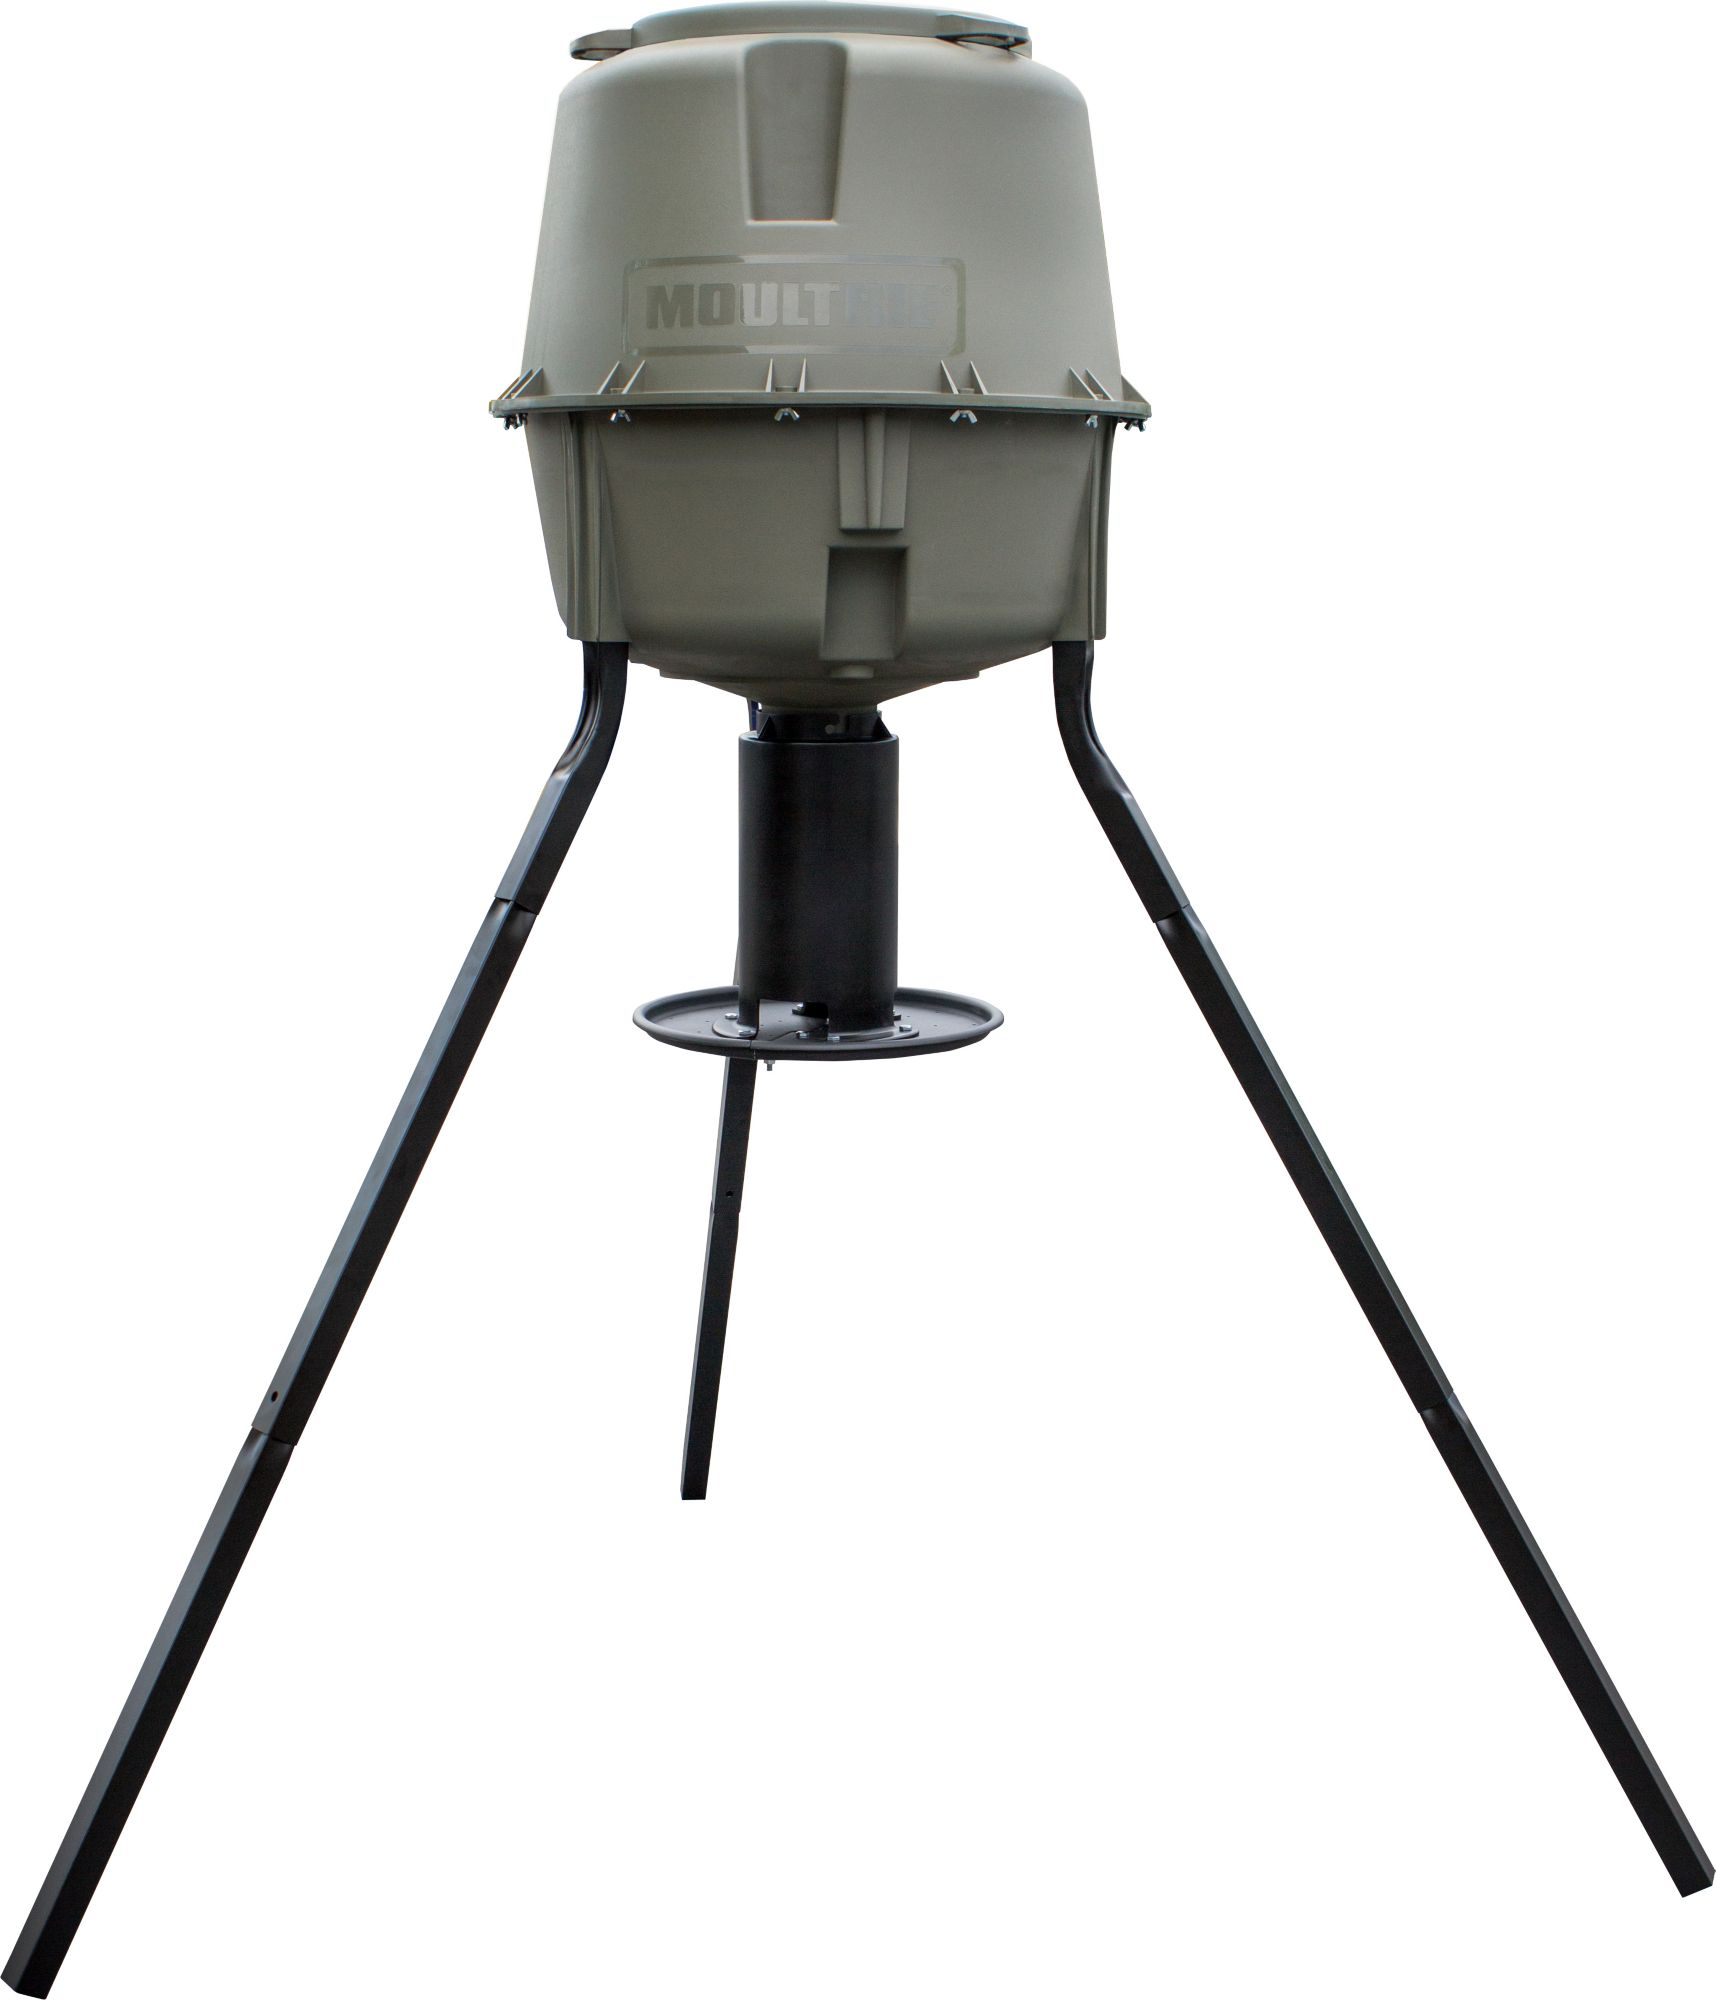 e deer fill feeder easy howexgirlback tripod moultrie z com x